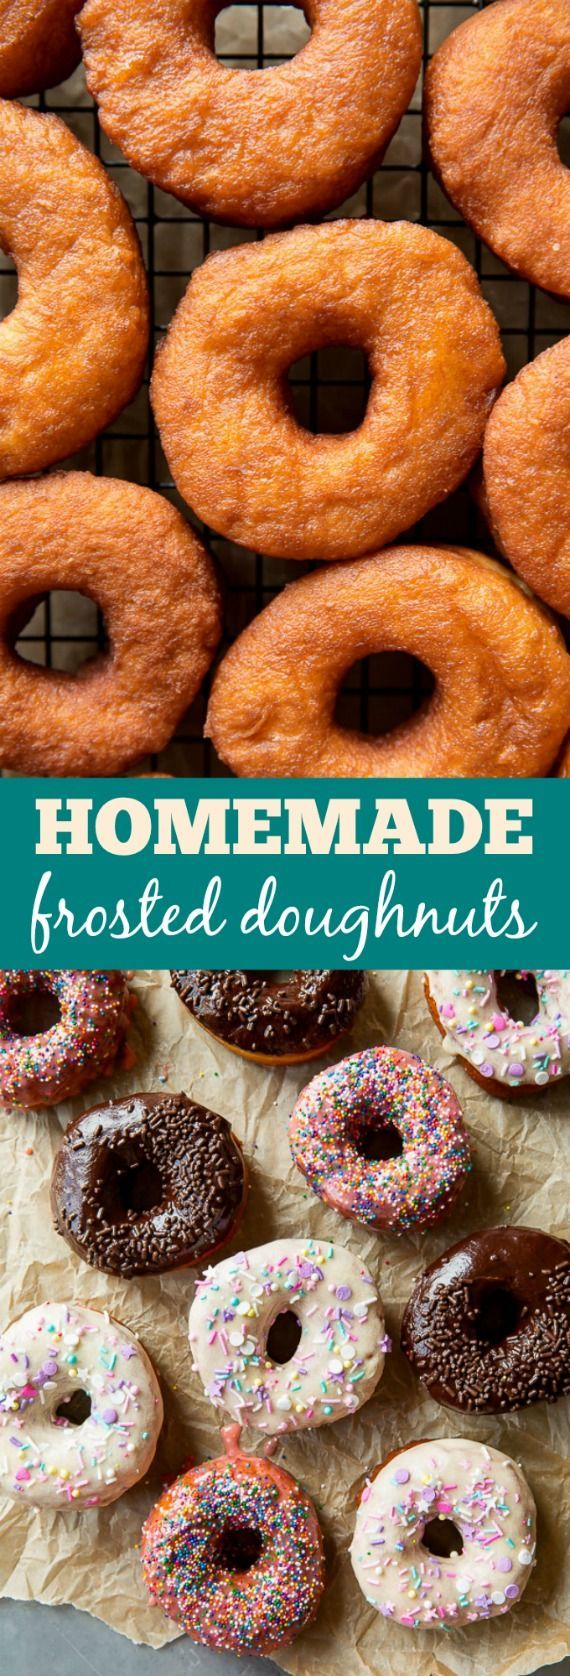 Here's how to make frosted doughnuts from scratch, 3 ways! Vanilla, chocolate and strawberry doughnuts! Recipes on http://sallysbakingaddiction.com